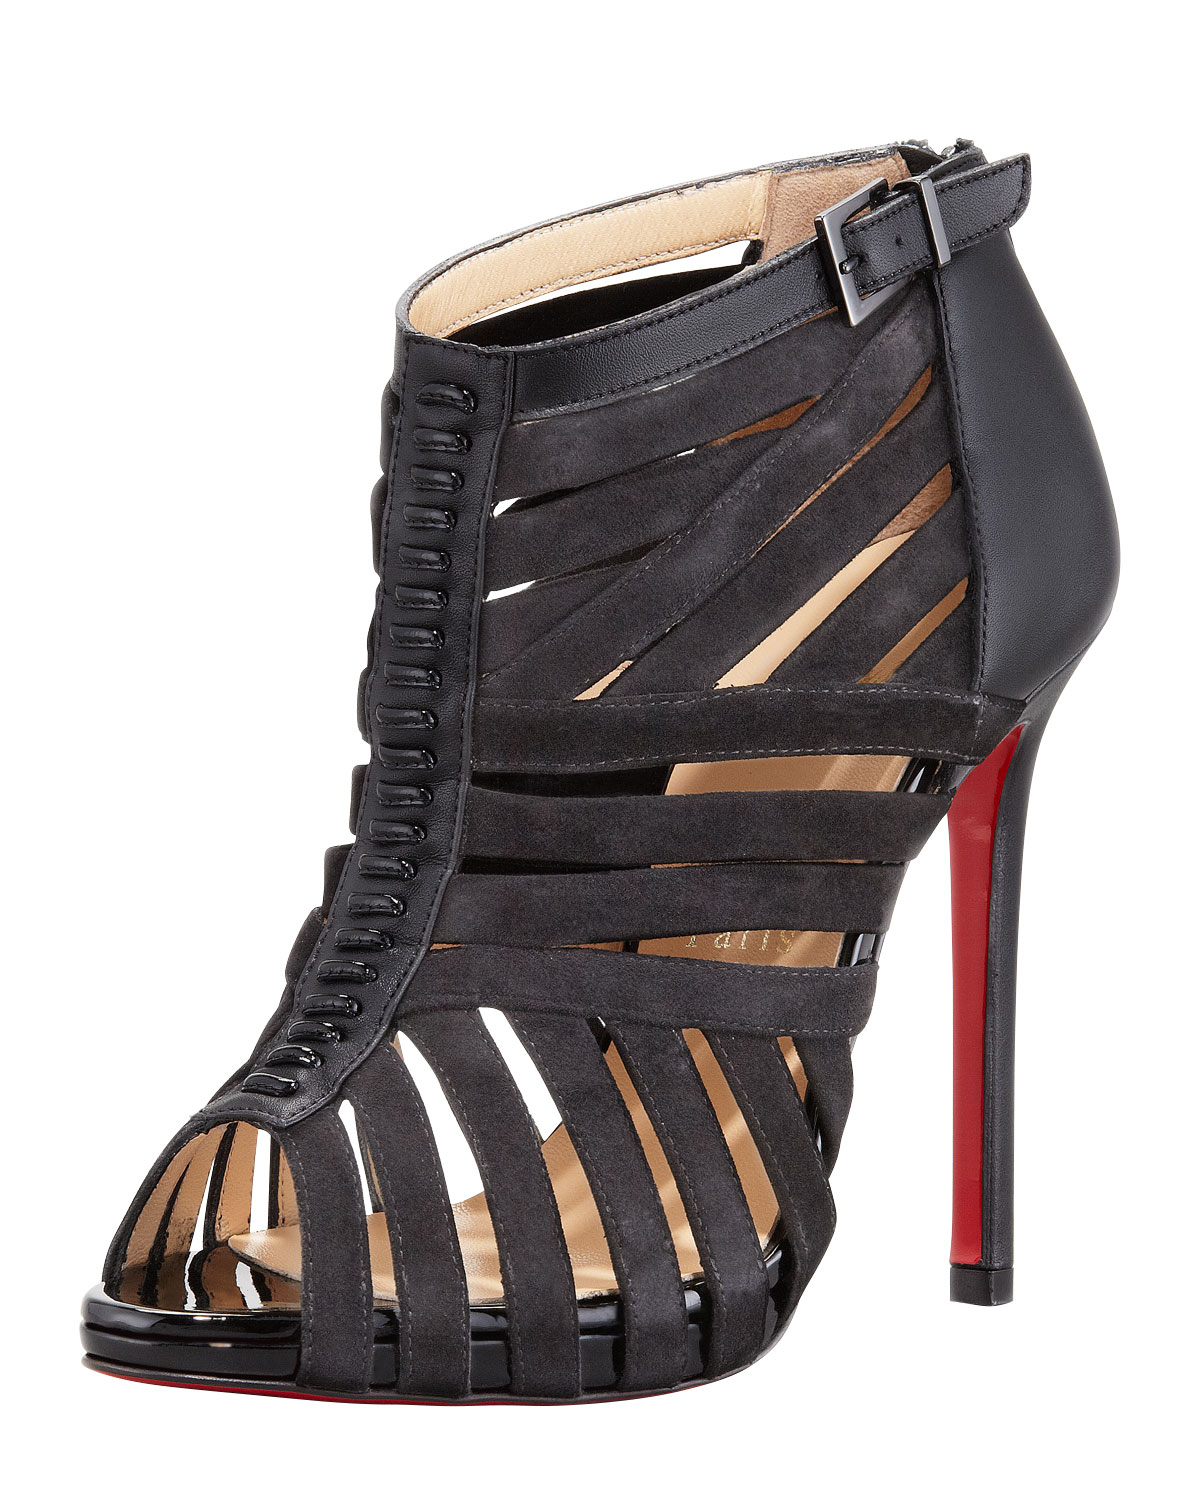 christian louboutin black suede sandals